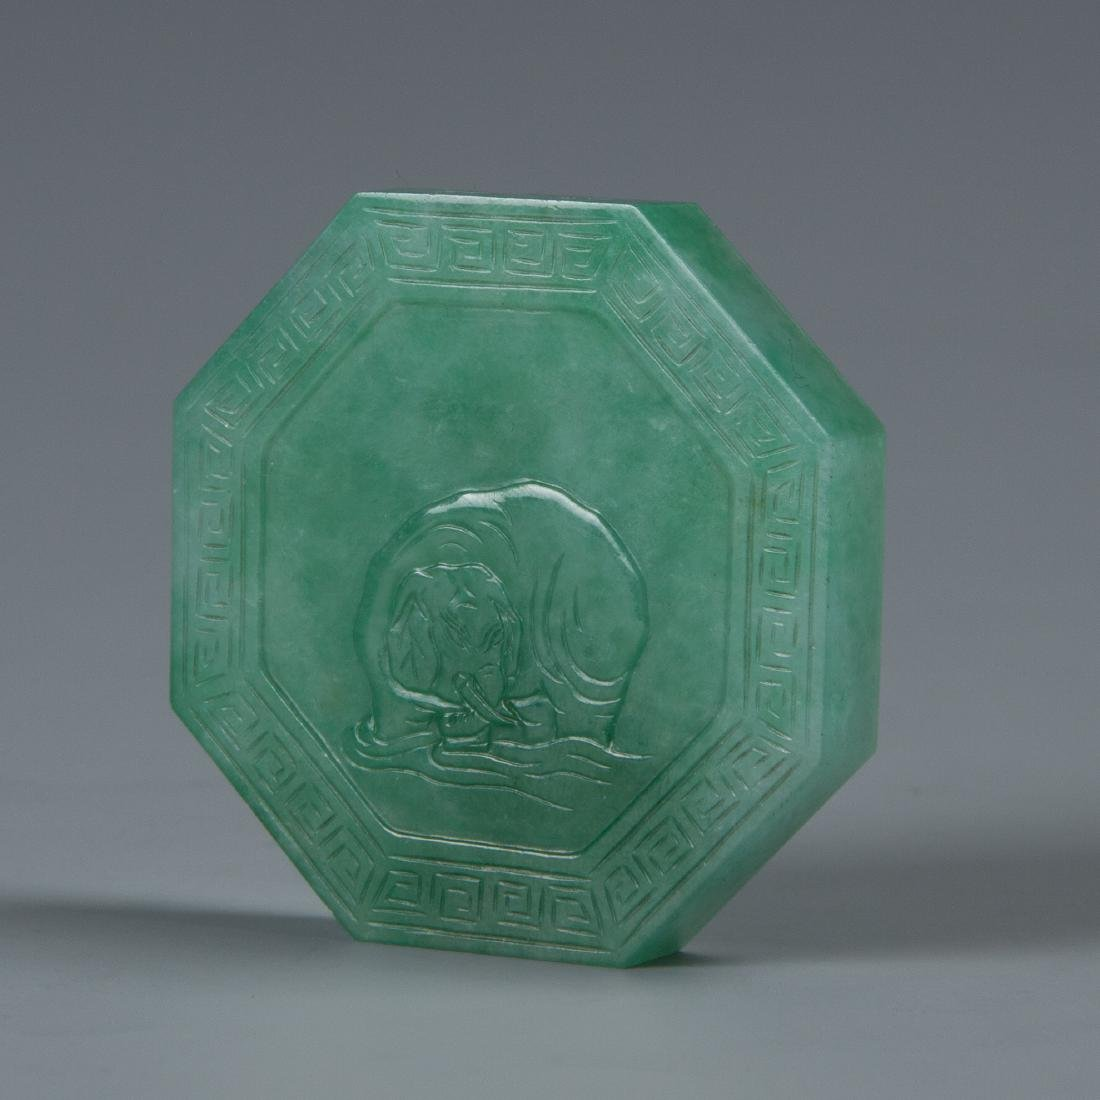 Octagon Shaped Jadeite  Pendent with Elephant Carving - 2